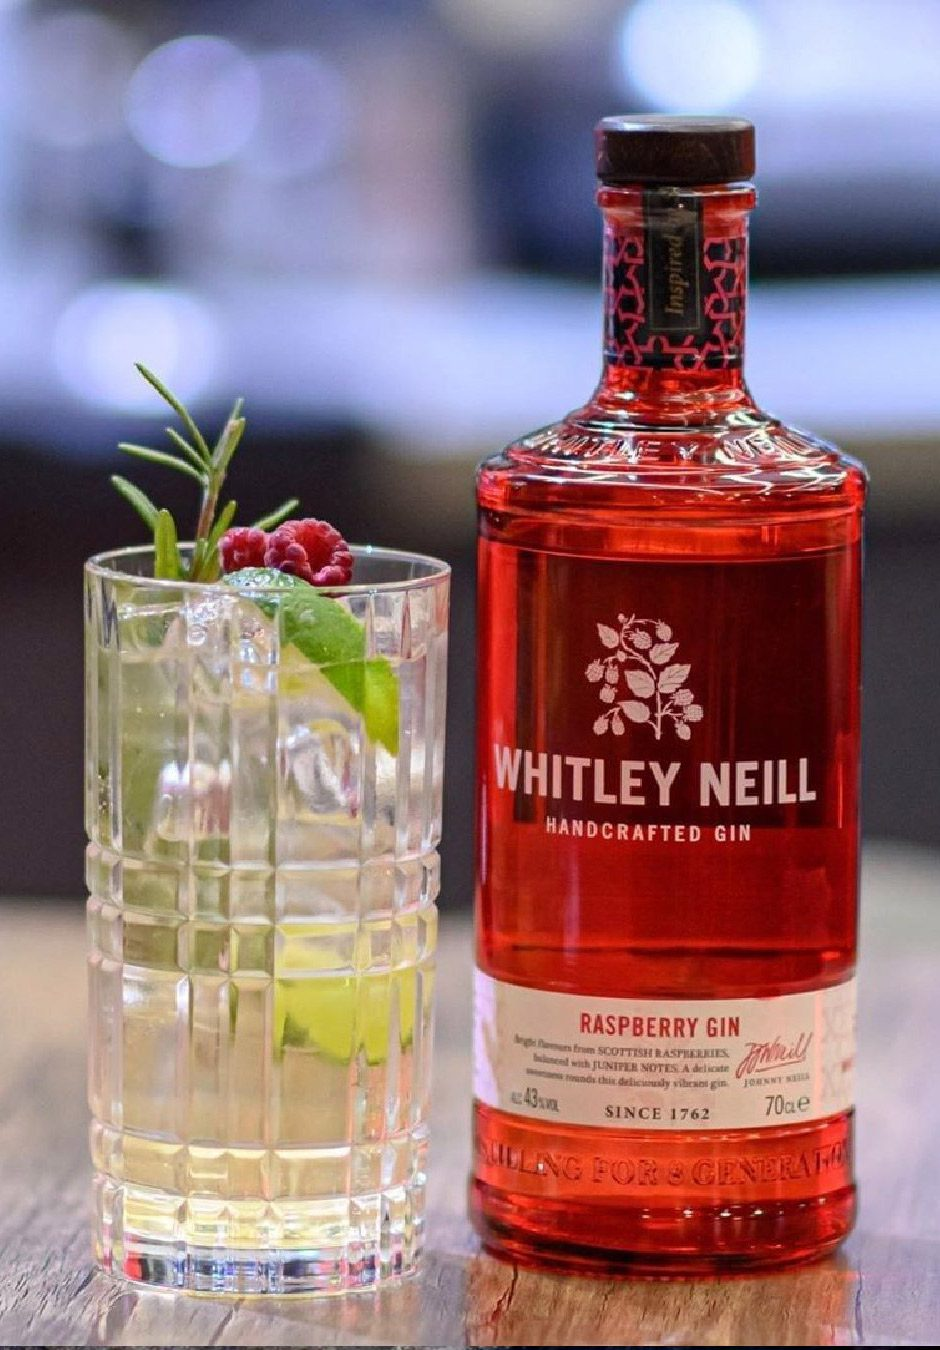 Whitley Neill Raspberry | Handcrafted Gin | Cocktail